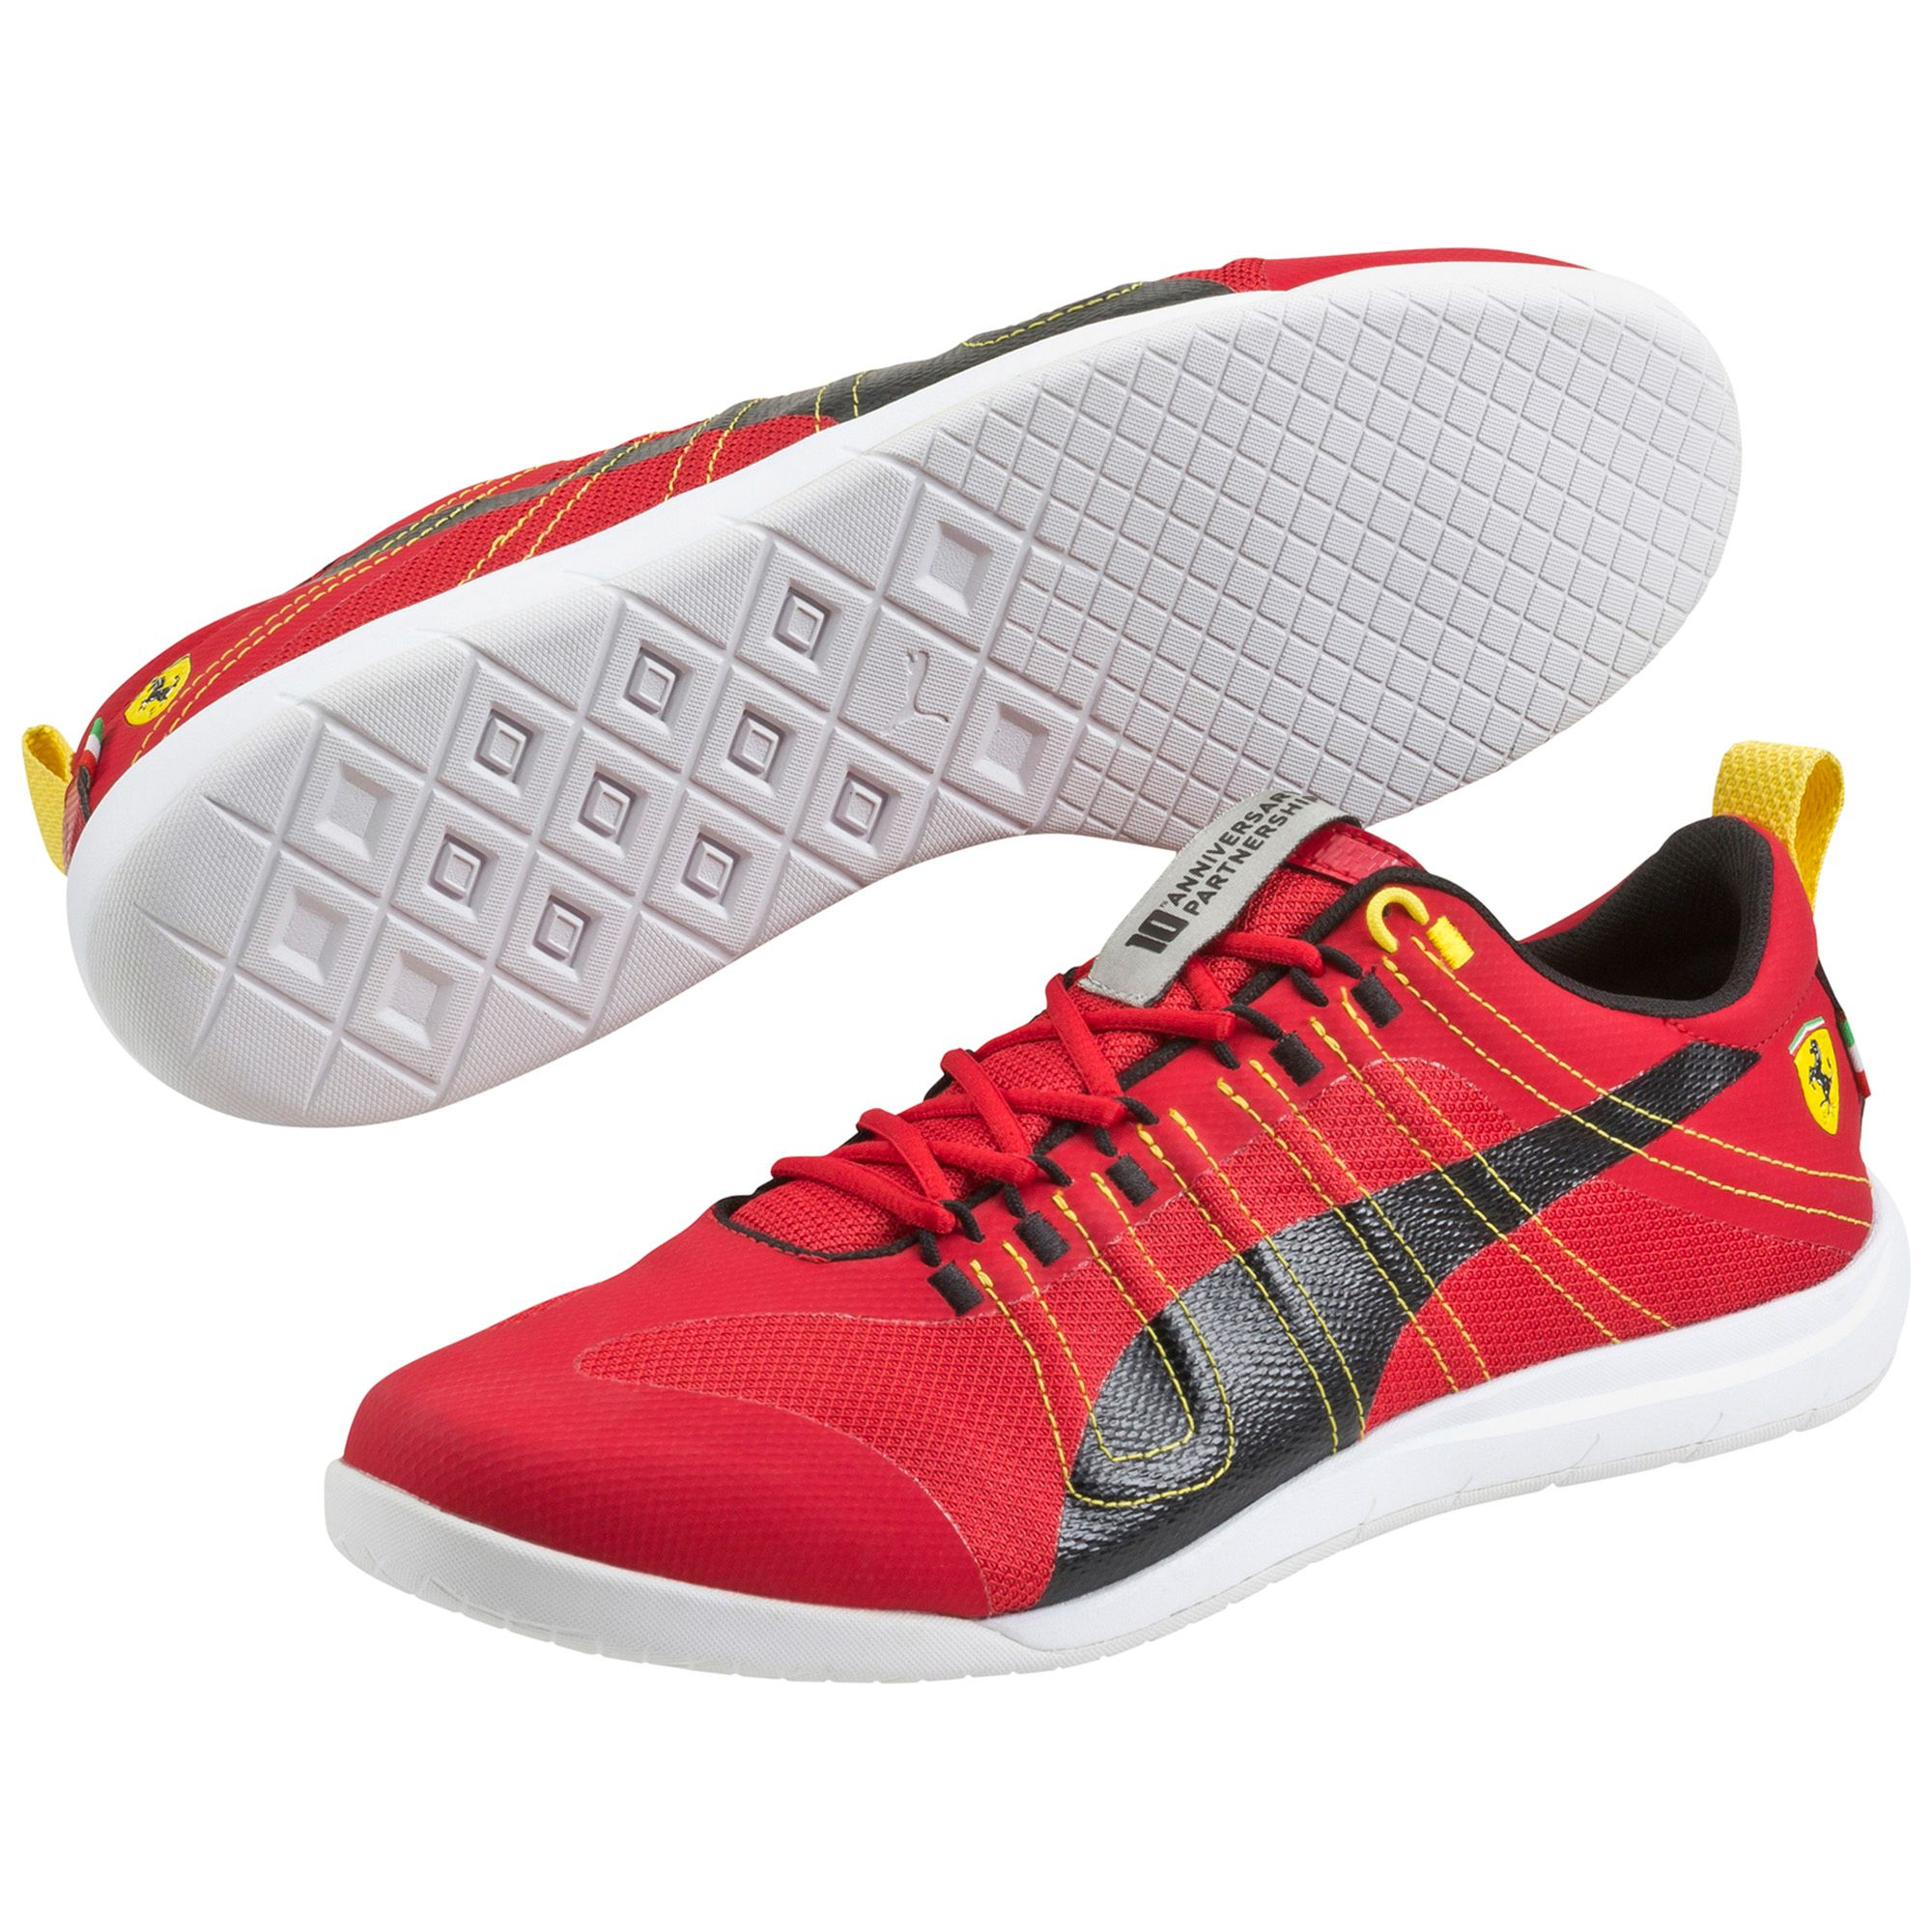 puma tech everfit sf 10 sneaker schuhe ferrari replica. Black Bedroom Furniture Sets. Home Design Ideas